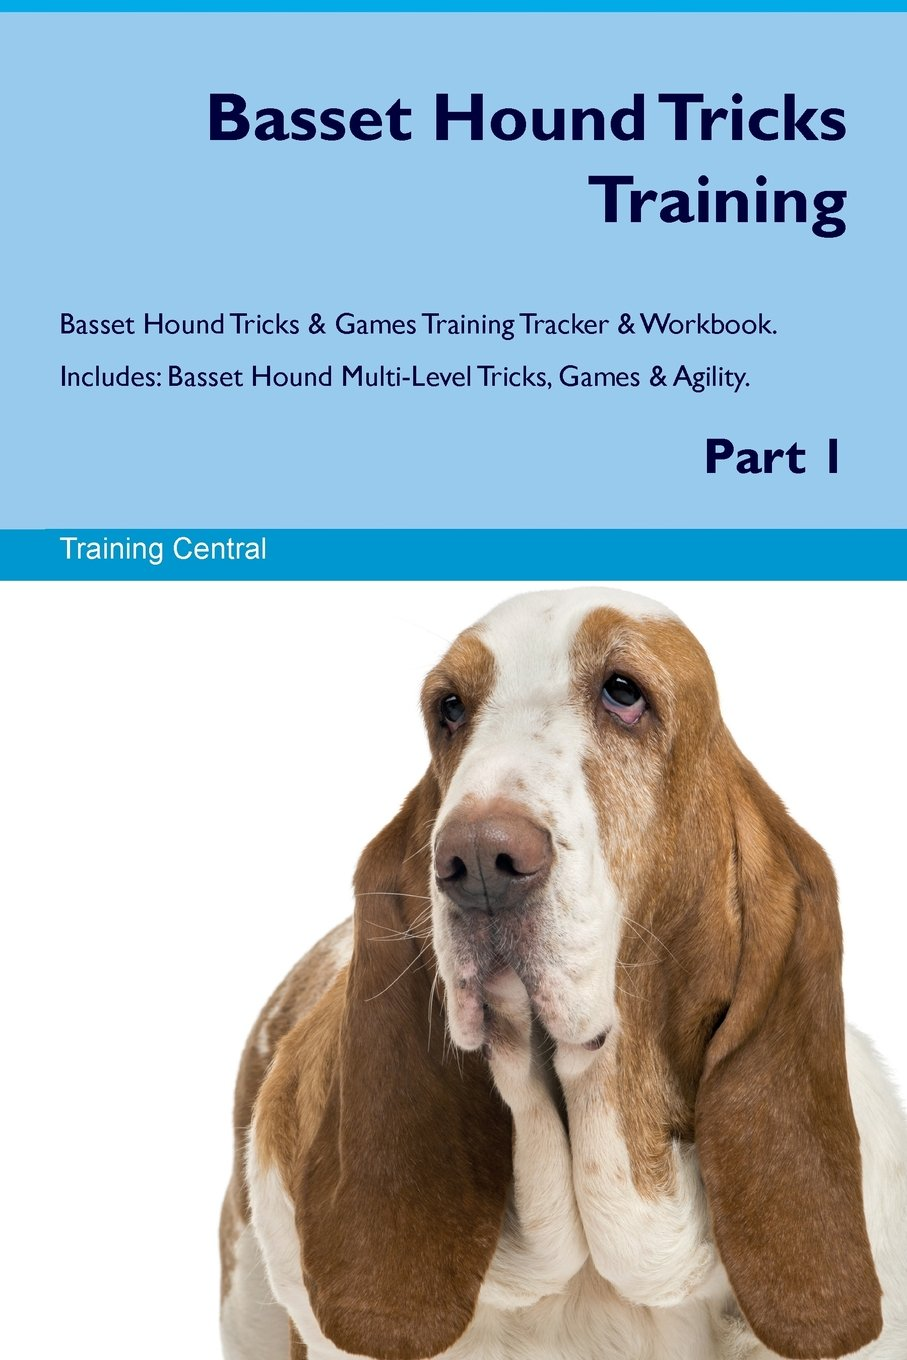 Basset Hound Tricks Training Basset Hound Tricks & Games Training Tracker & Workbook. Includes: Basset Hound Multi-Level…